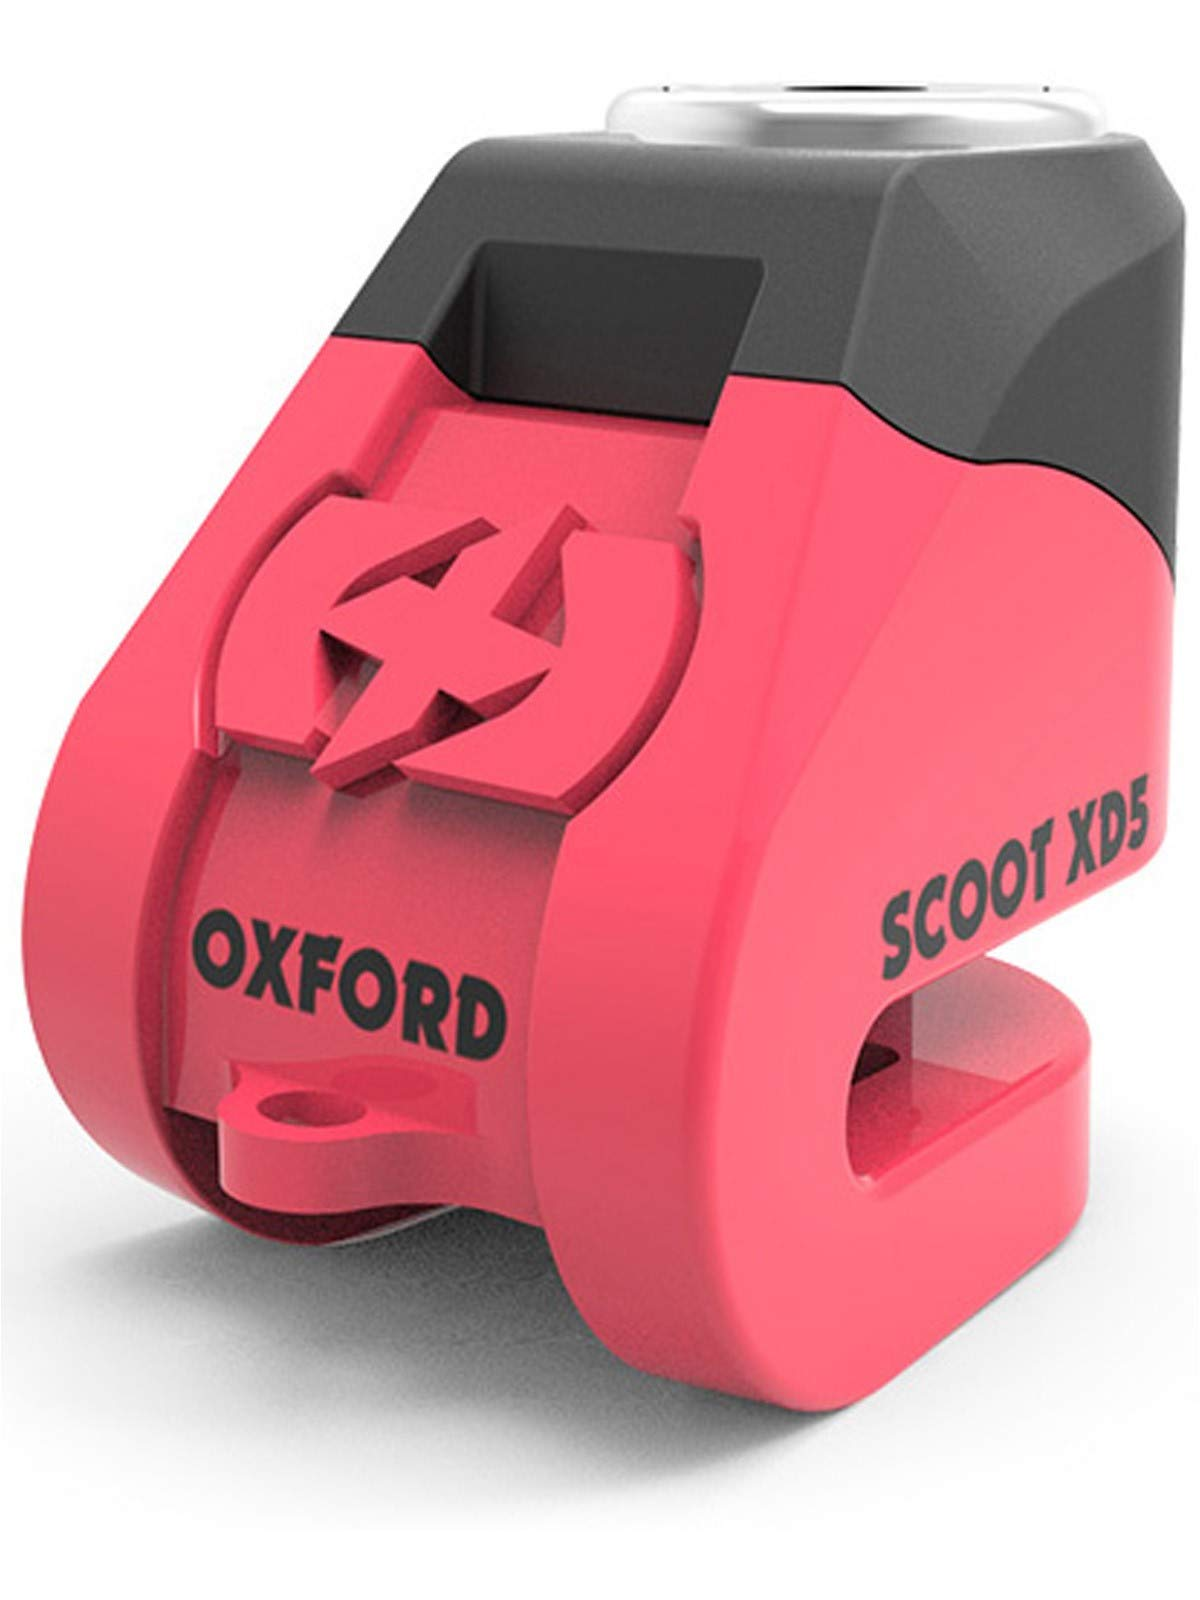 Oxford Pink Scoot Xd5 Disc Motorcycle Lock (Default, Pink)